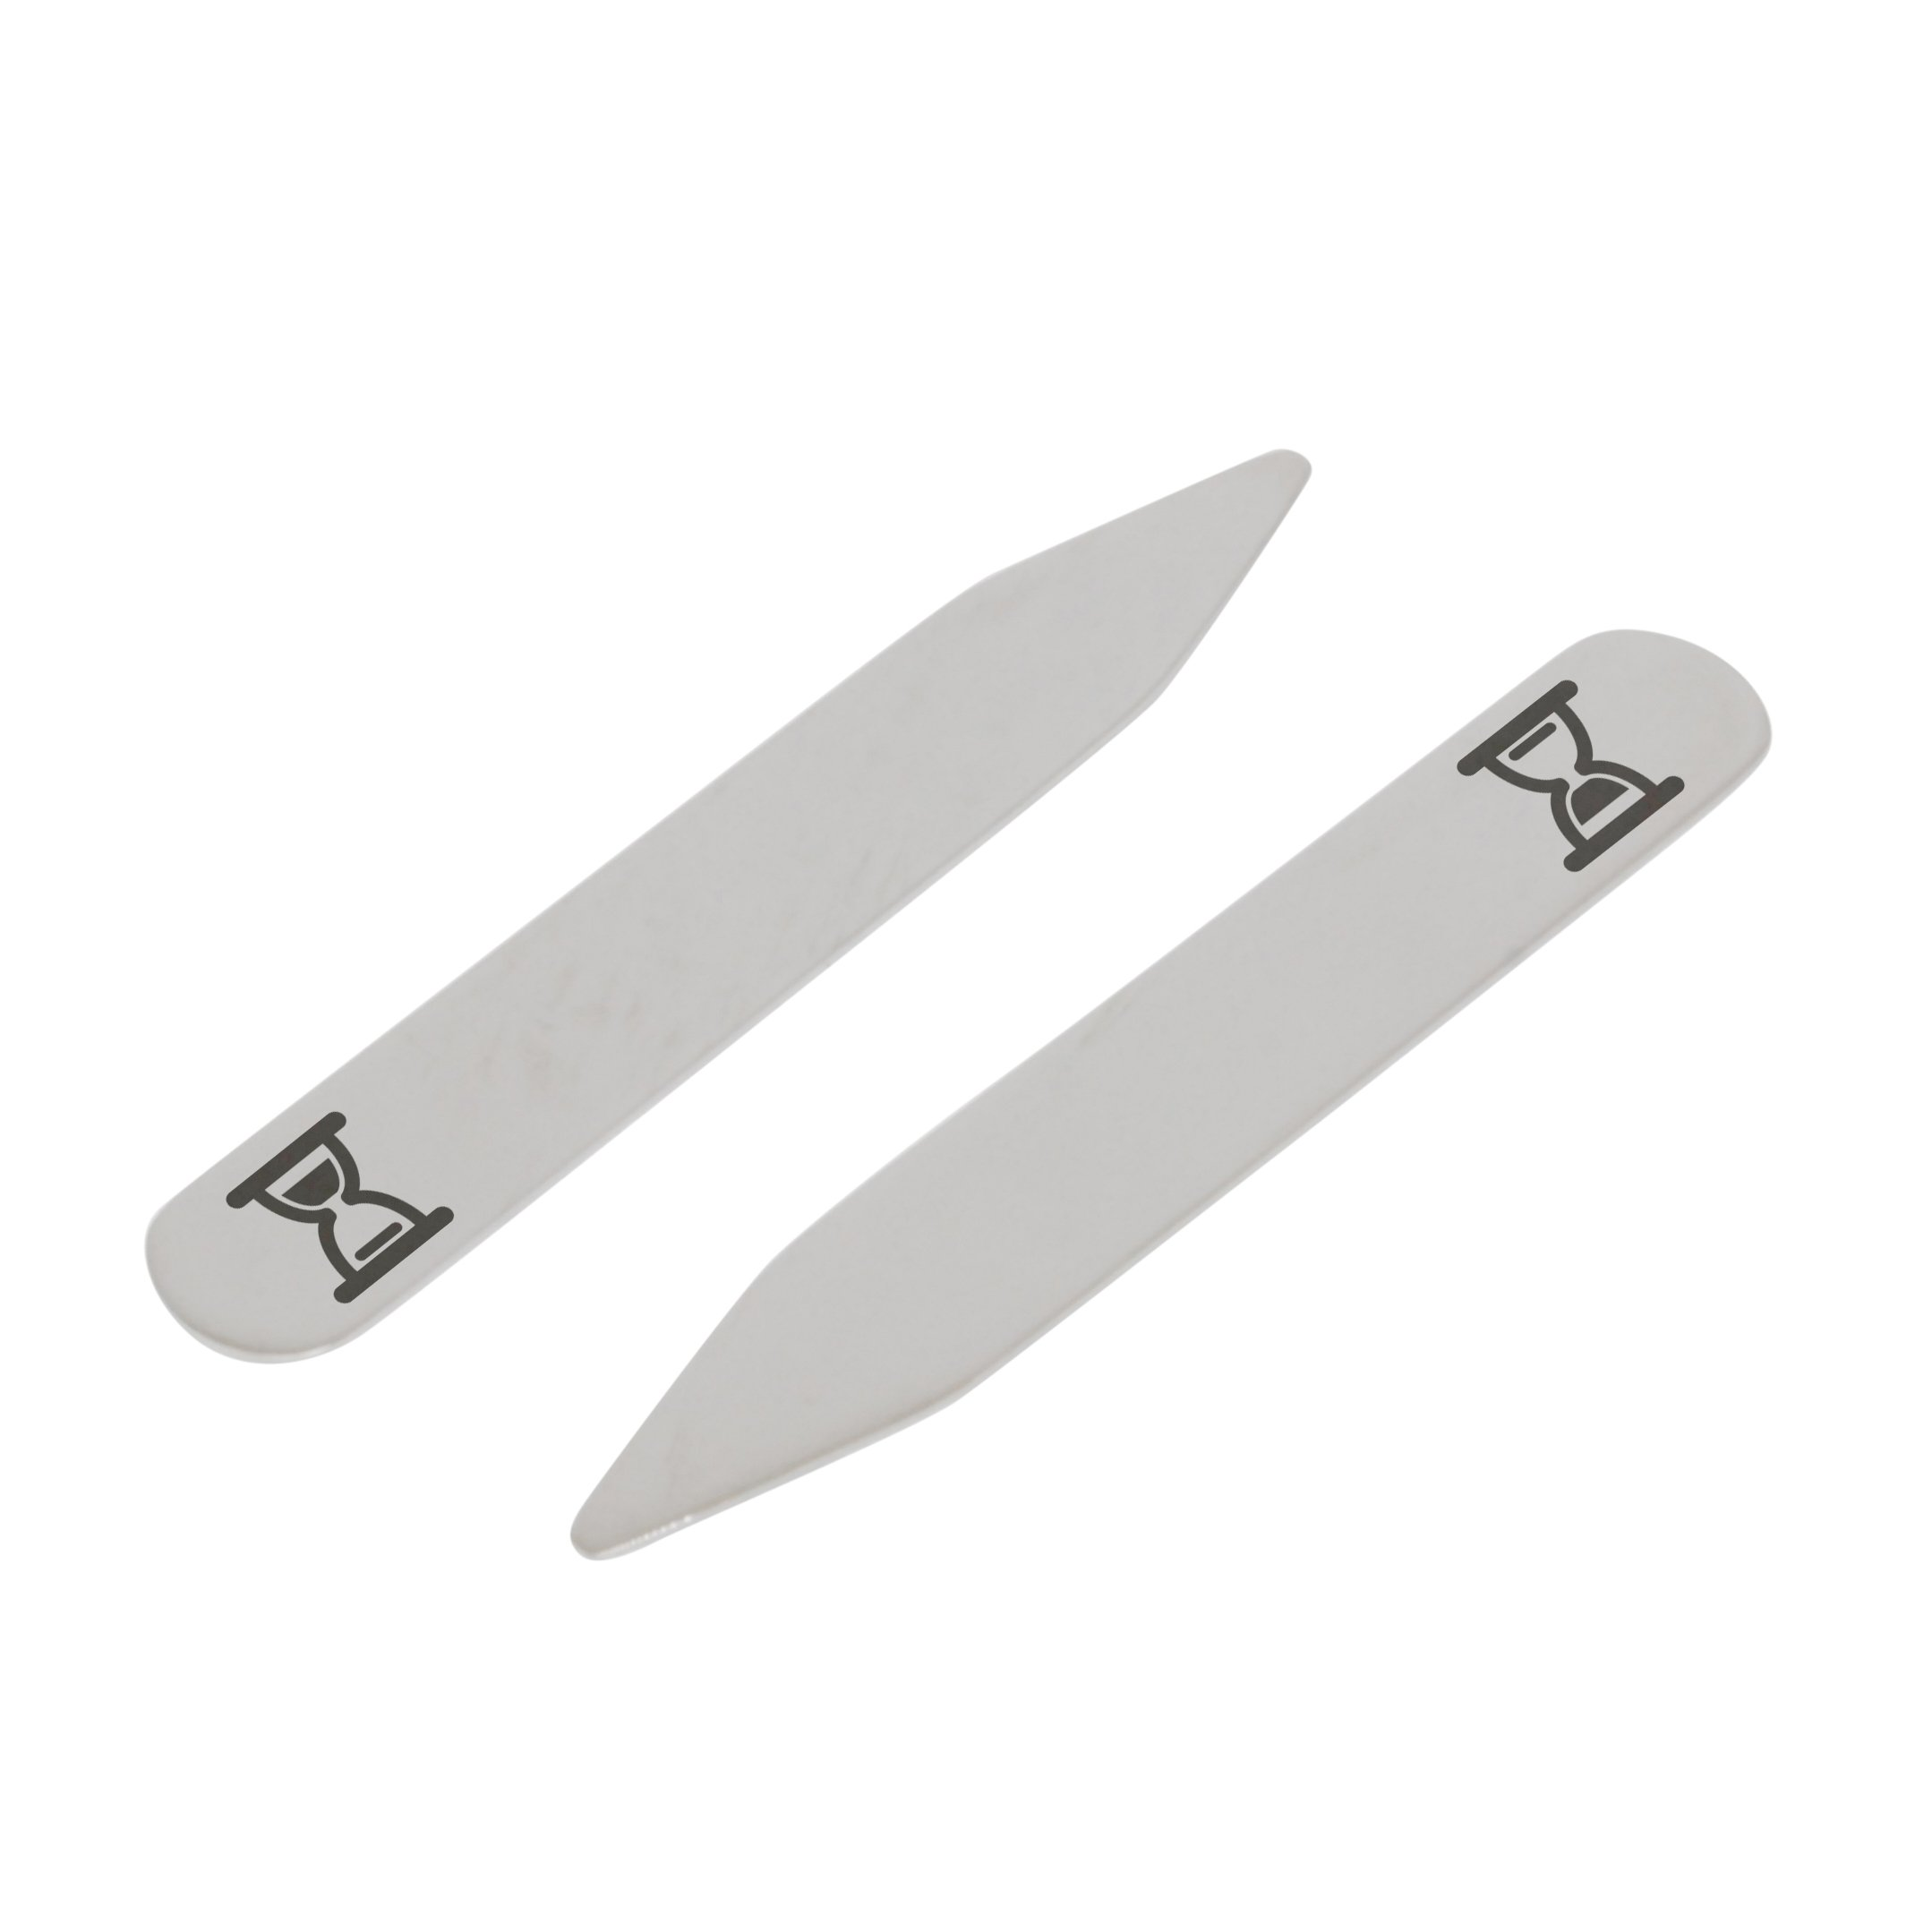 MODERN GOODS SHOP Stainless Steel Collar Stays With Laser Engraved Hourglass Icon Design - 2.5 Inch Metal Collar Stiffeners - Made In USA